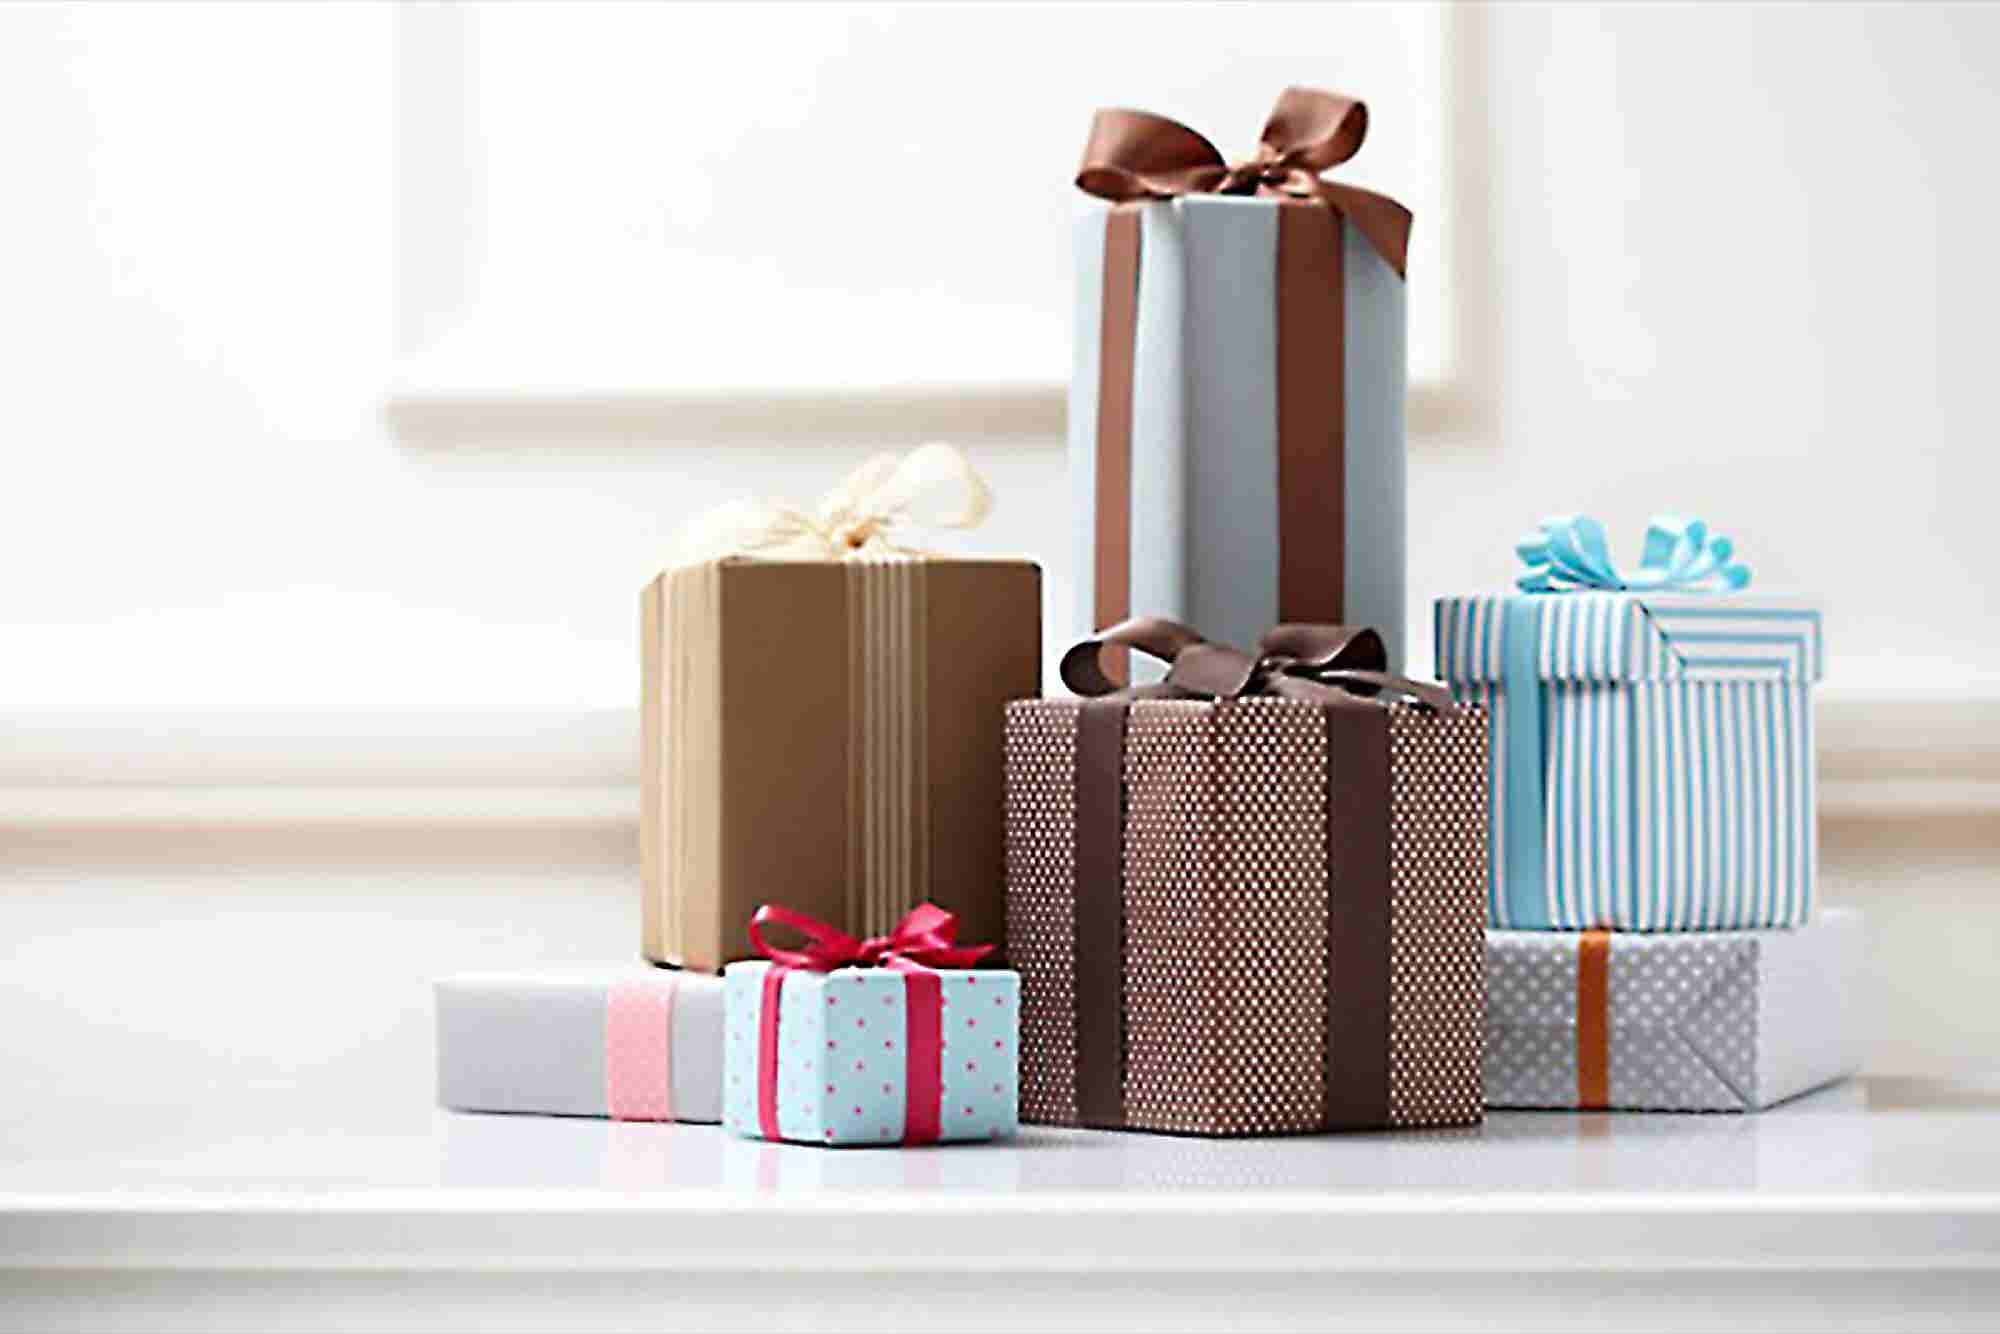 5 Ways to Convert Challenges Into Gifts